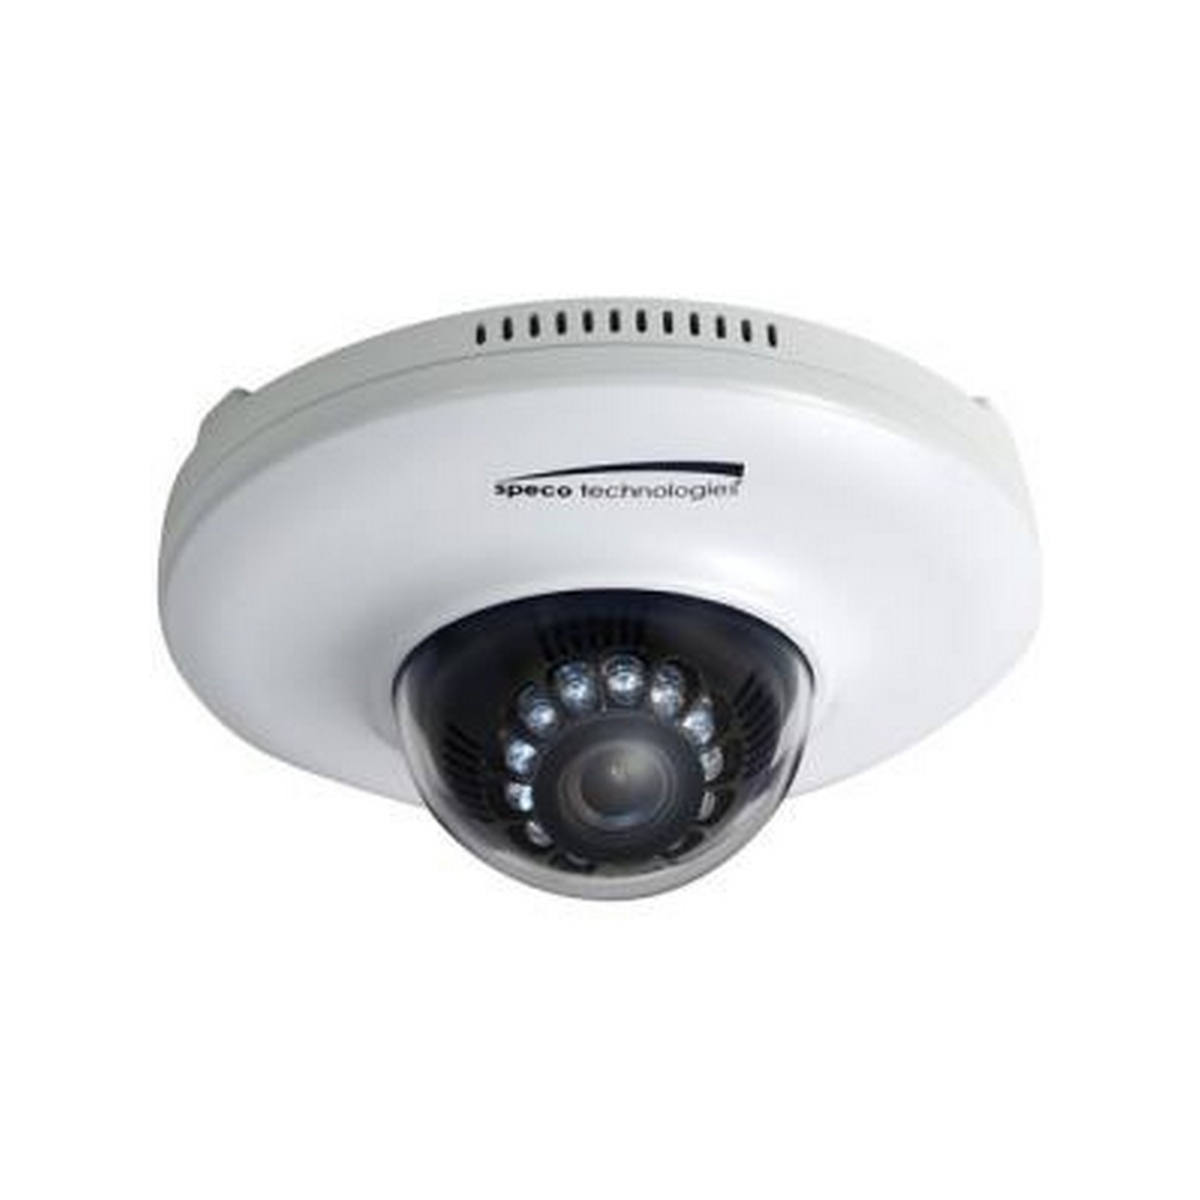 Speco 1080p Indoor Dome IP Camera 3mm fixed lens, color, IR